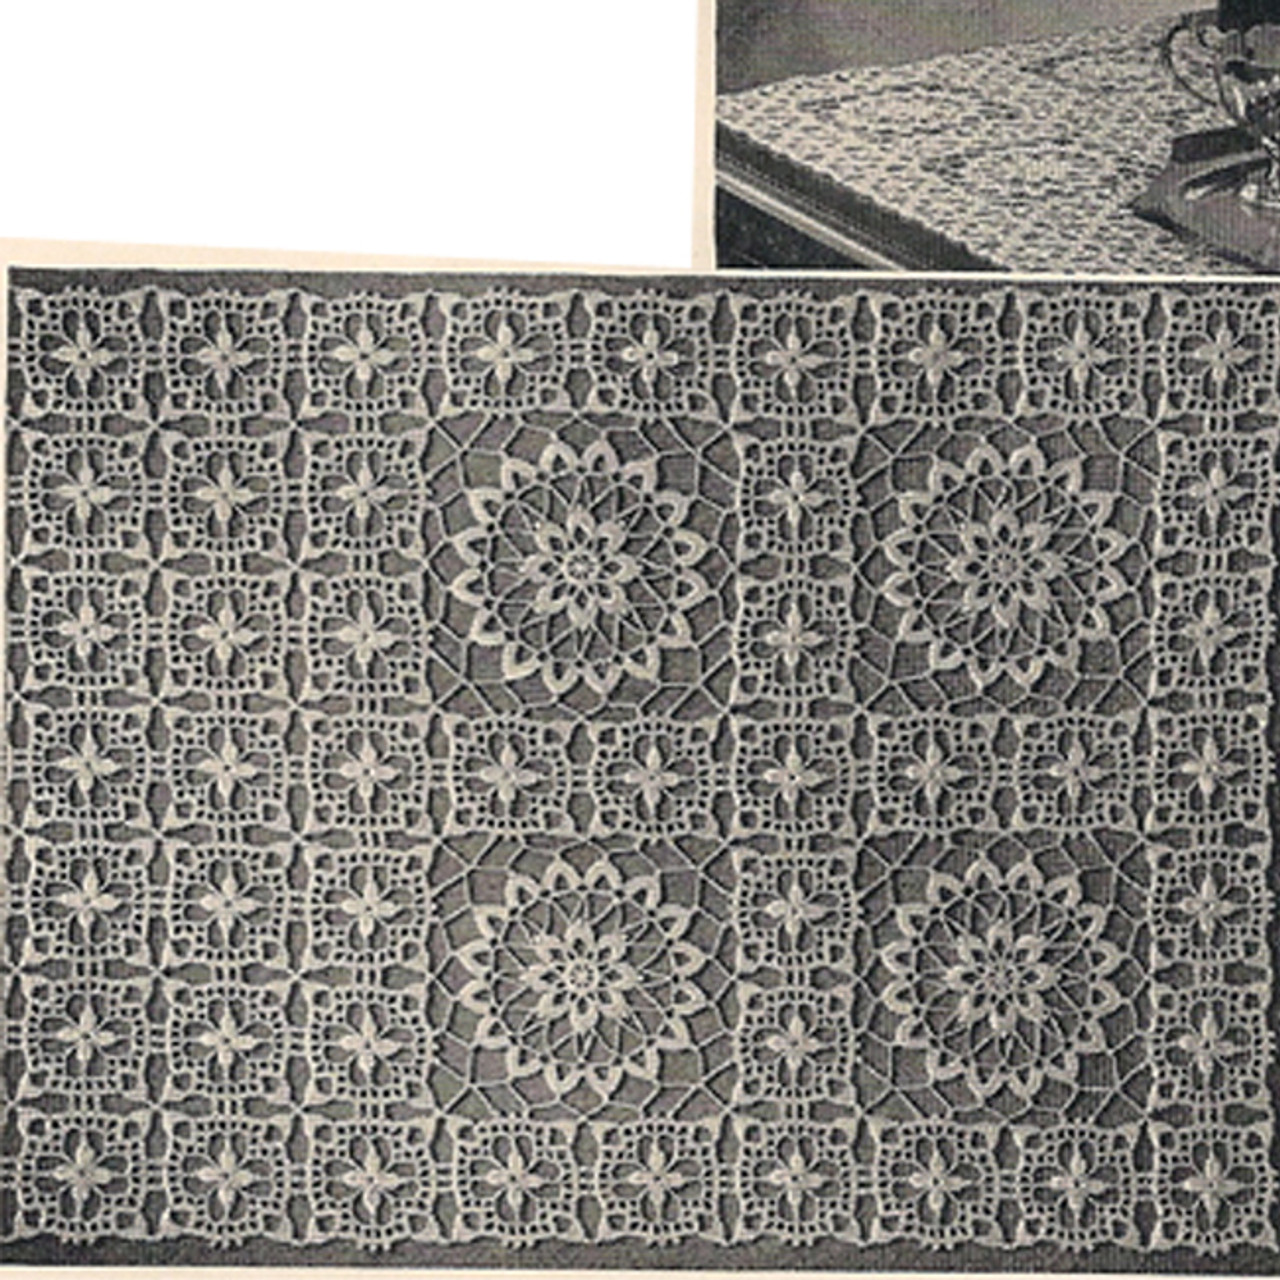 Crocheted Runner or scarf pattern, vintage 1950s